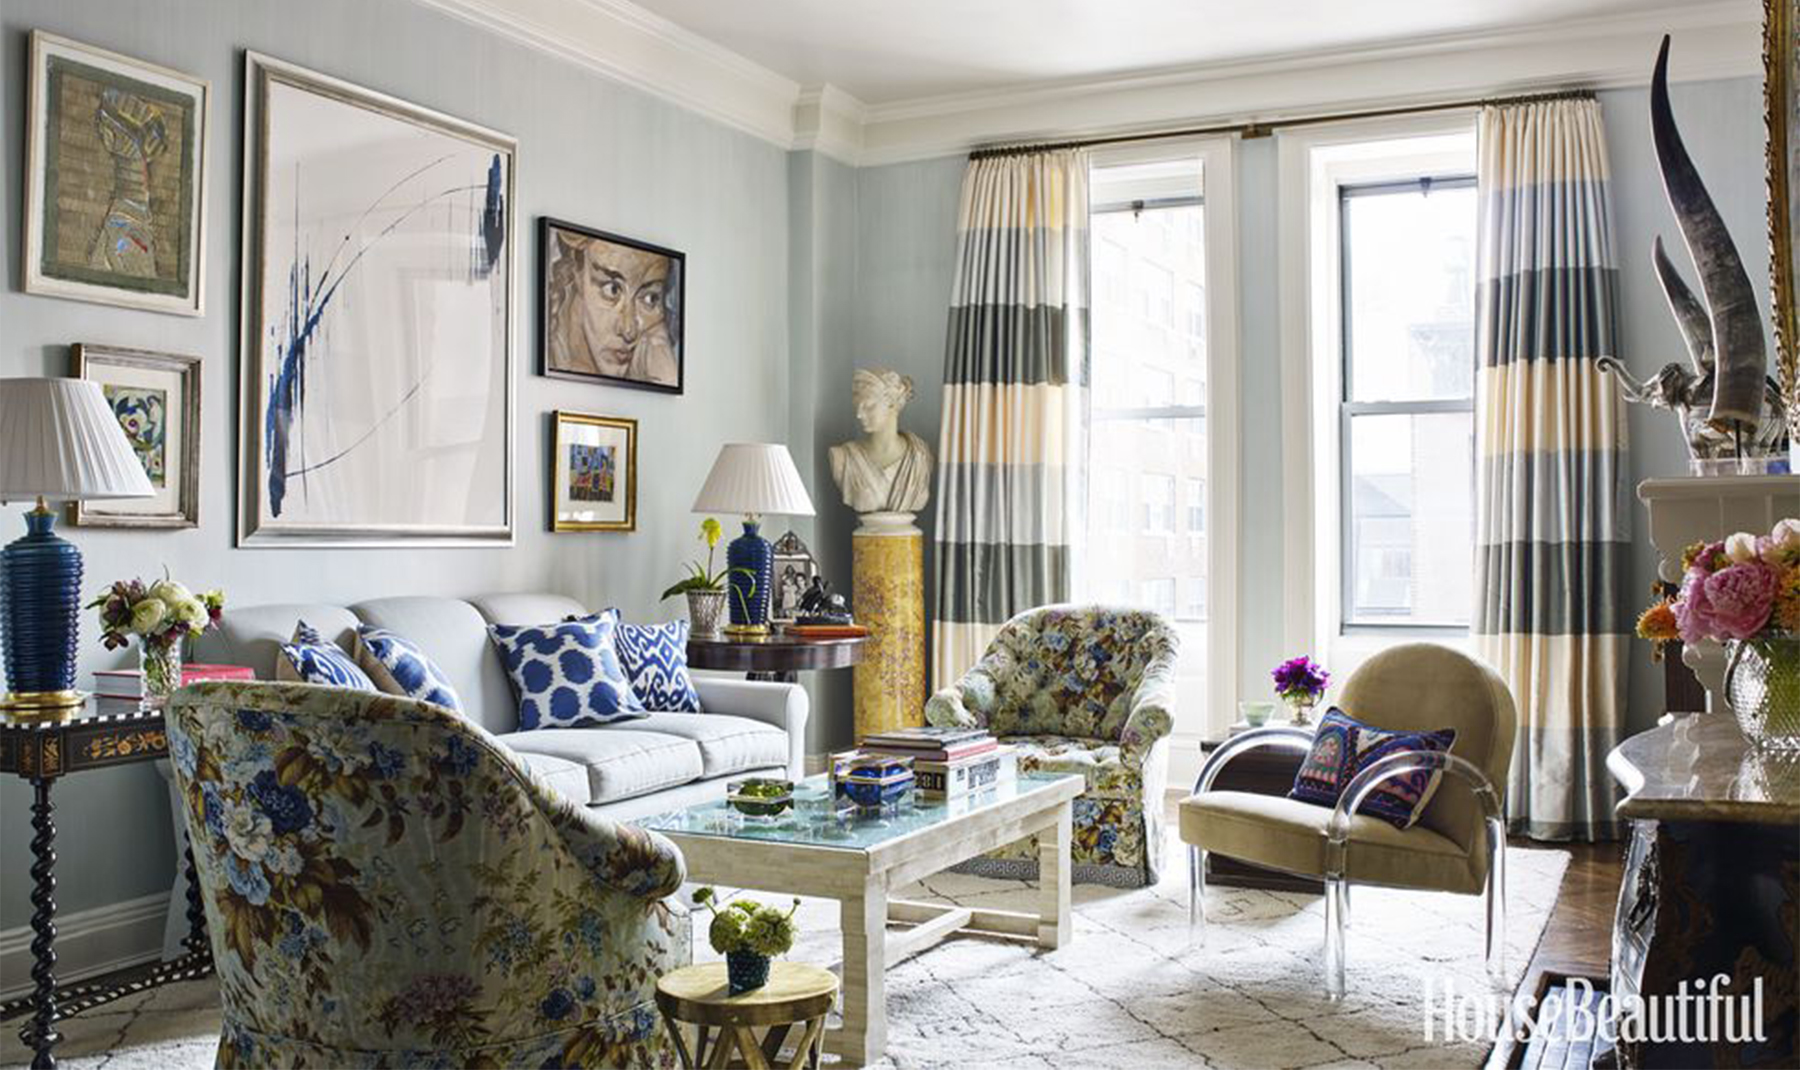 """8 Style Rules From the """"First Couple"""" of Decorating  House Beautiful - July 2015"""